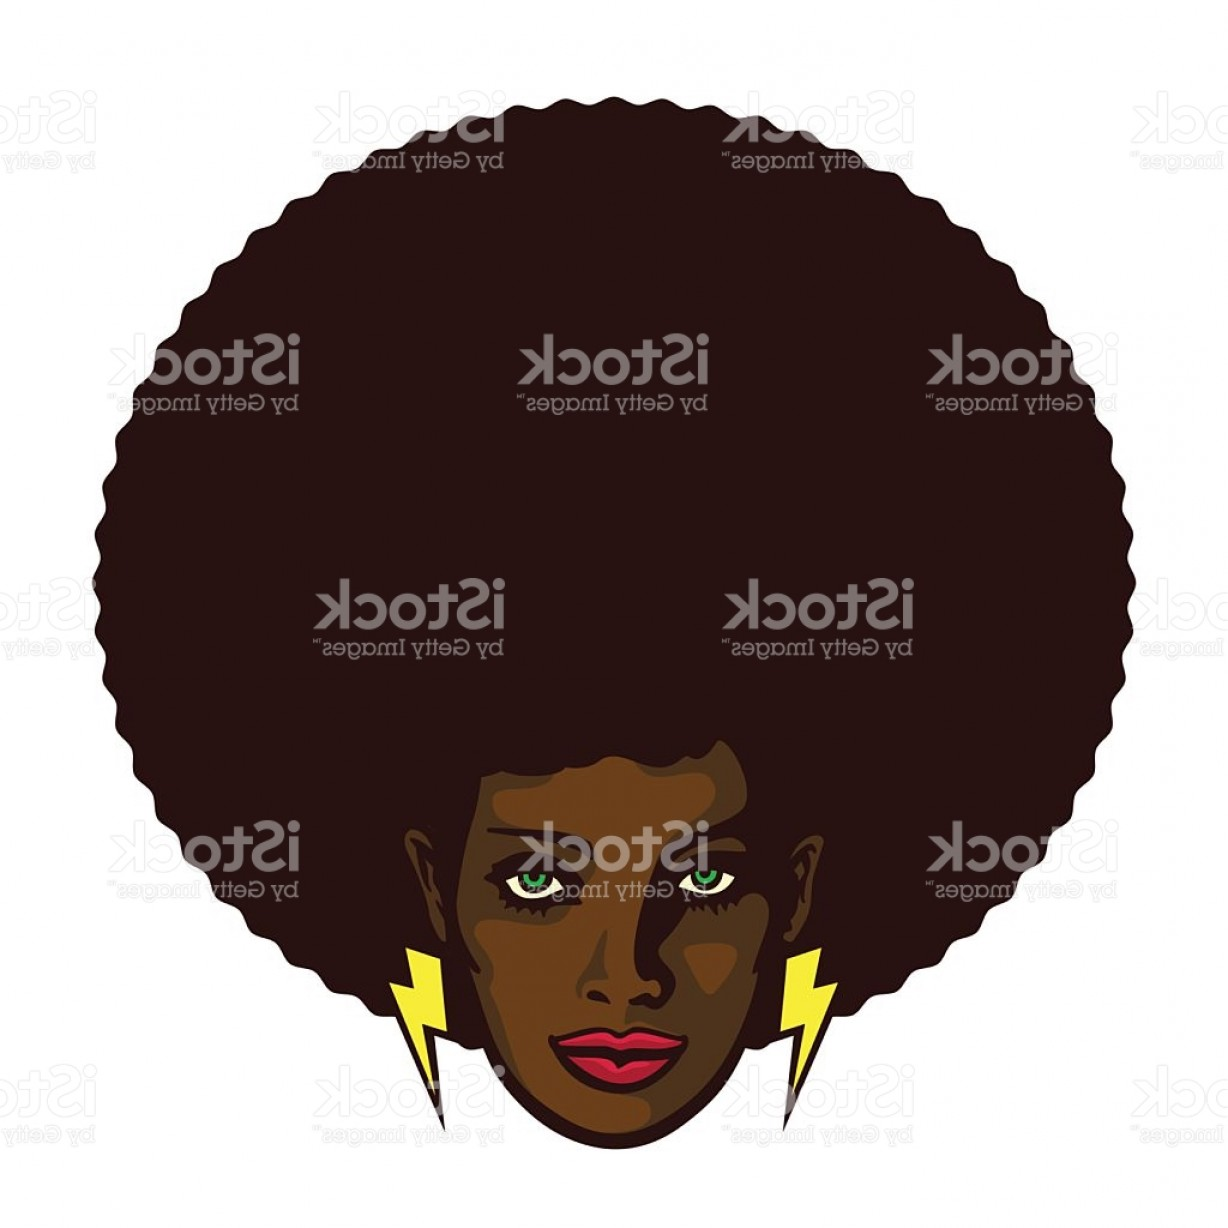 Black Woman Stock Vector: Groovy Cool Black Woman Face With Afro Hair Vector Illustration Gm